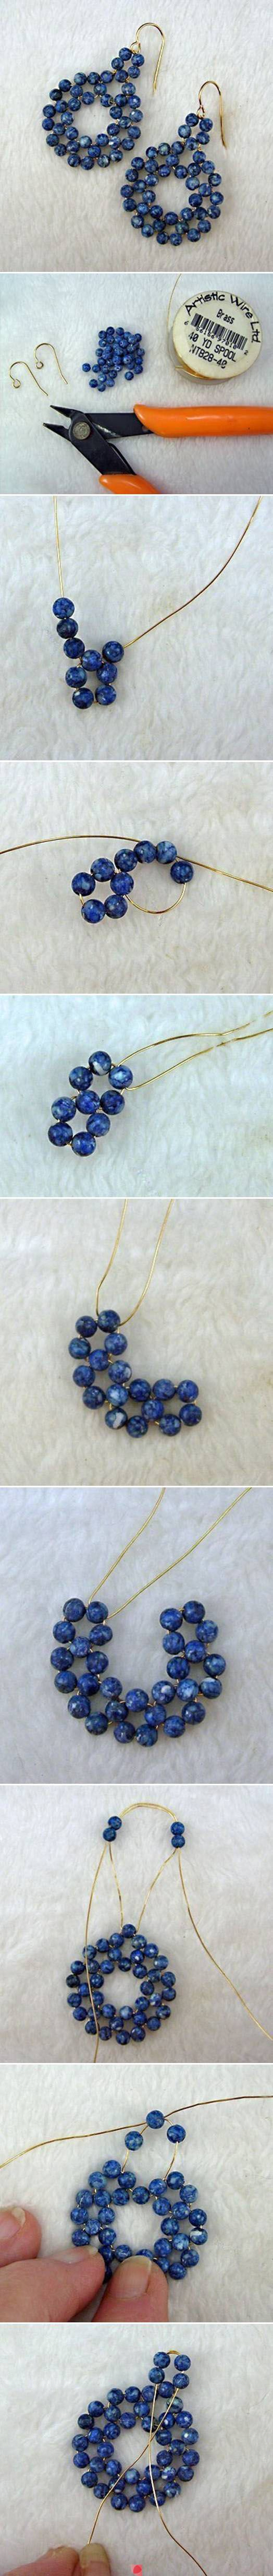 DIY with pictures - earrings here ... how about a necklace with several linked?? #Beading #Jewelry #Tutorials